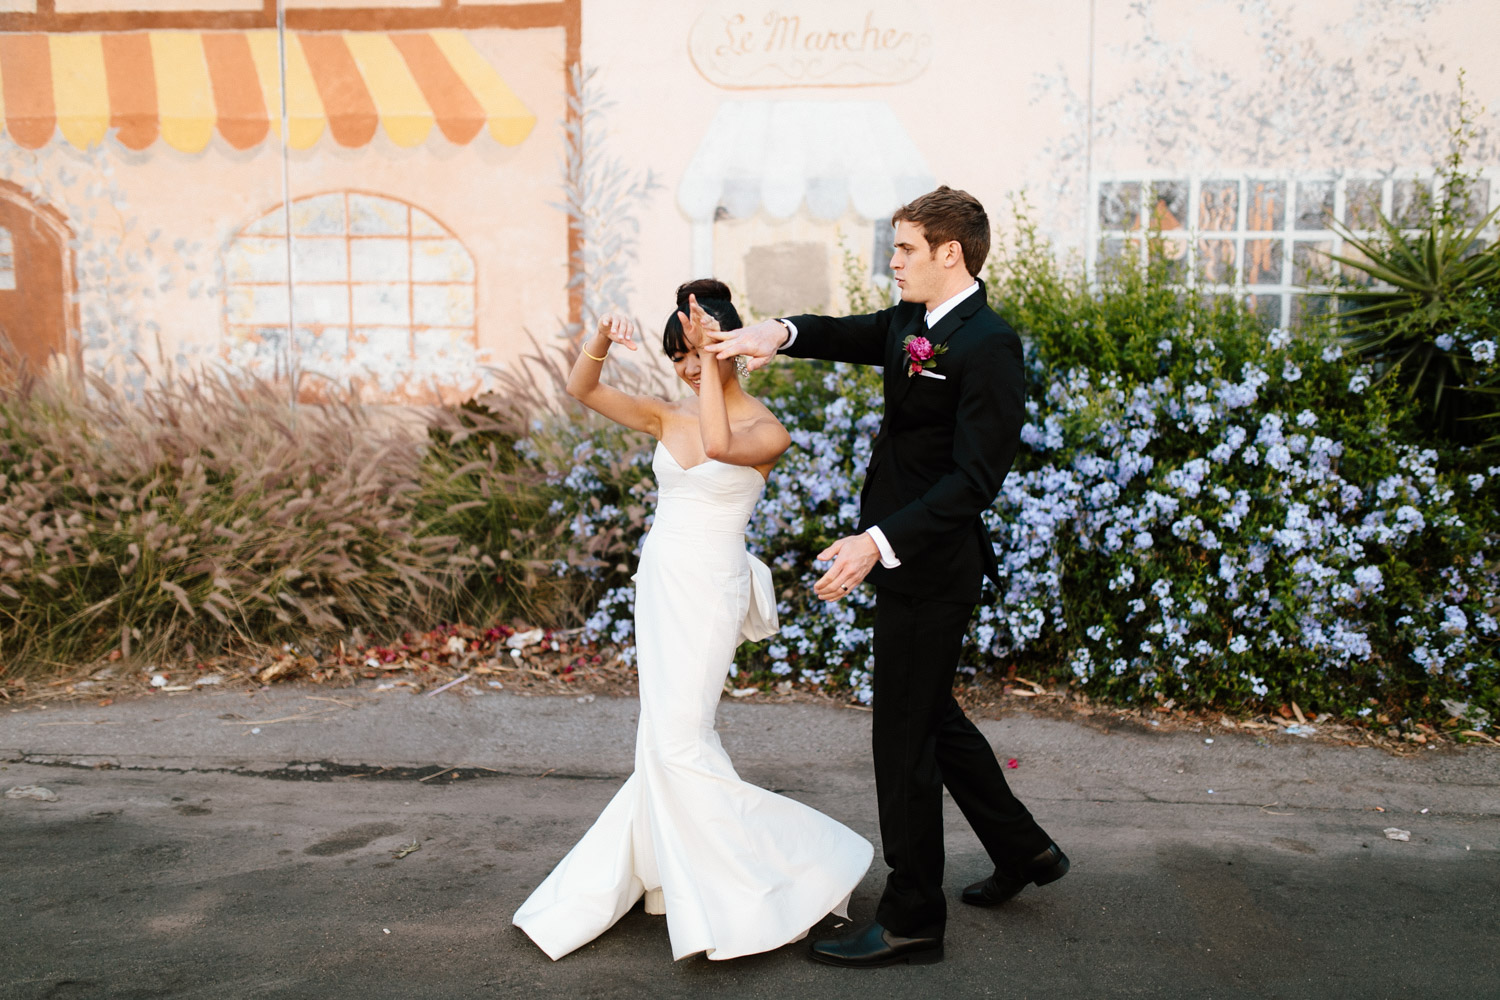 Los Angeles Wedding Photographer, The Elysian  - The Gathering Season x weareleoandkat 067.JPG